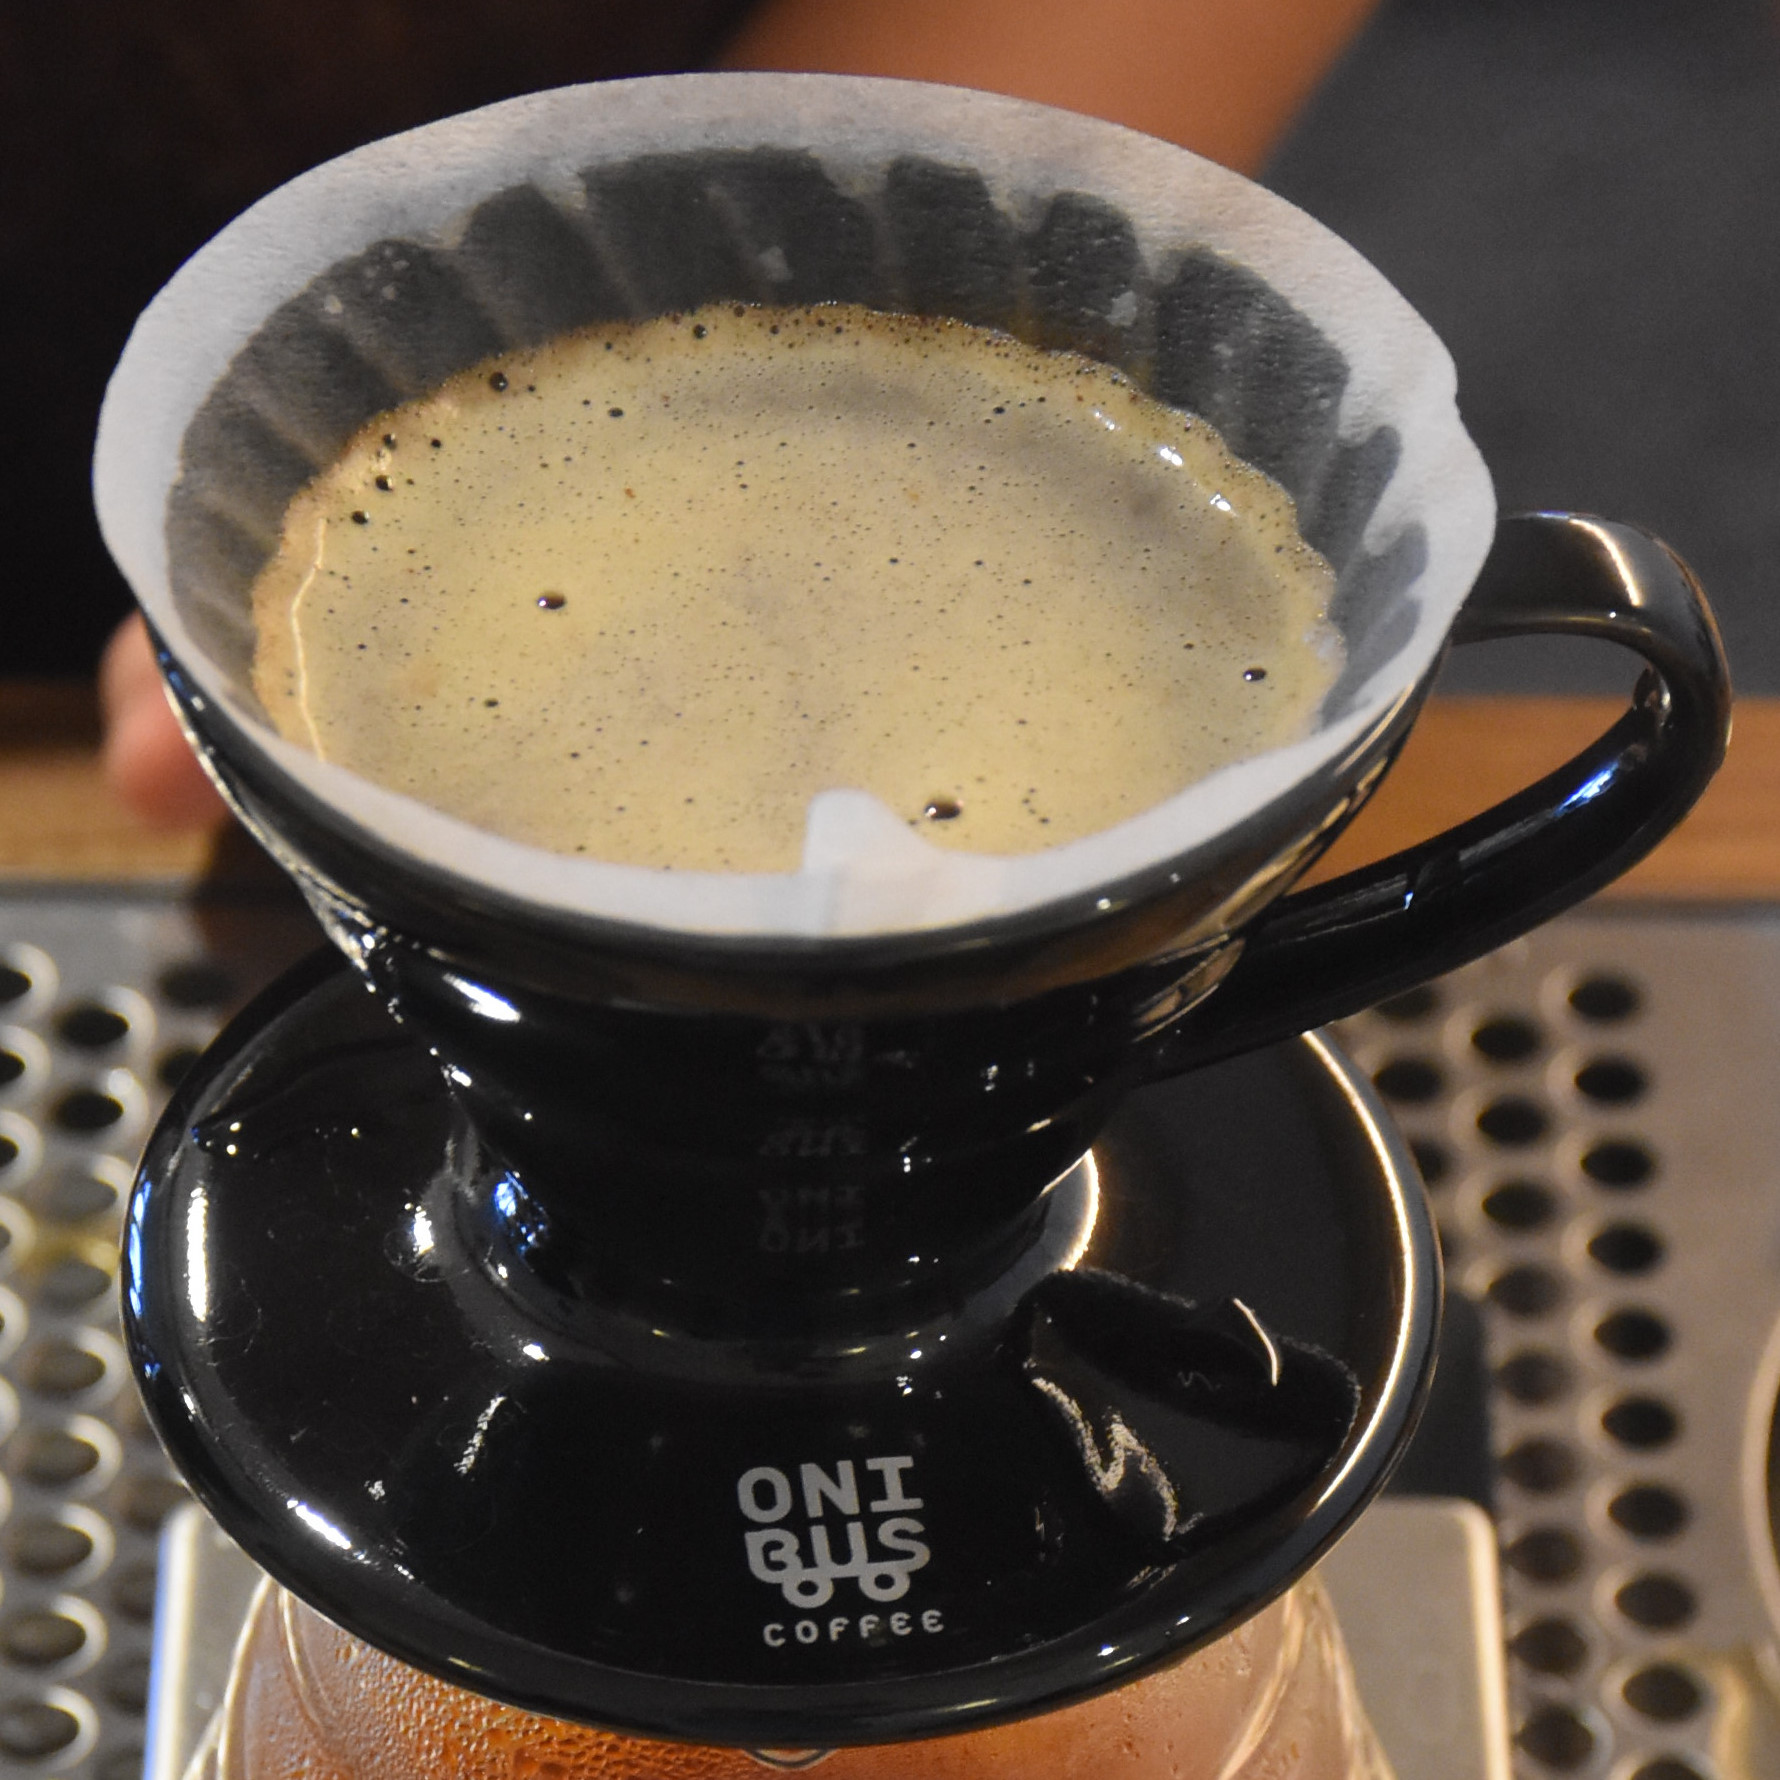 My Colombian El Paraiso, a washed coffee, being made in a V60 at the new Onibus coffee shop/roastery in Yakumo, Tokyo.